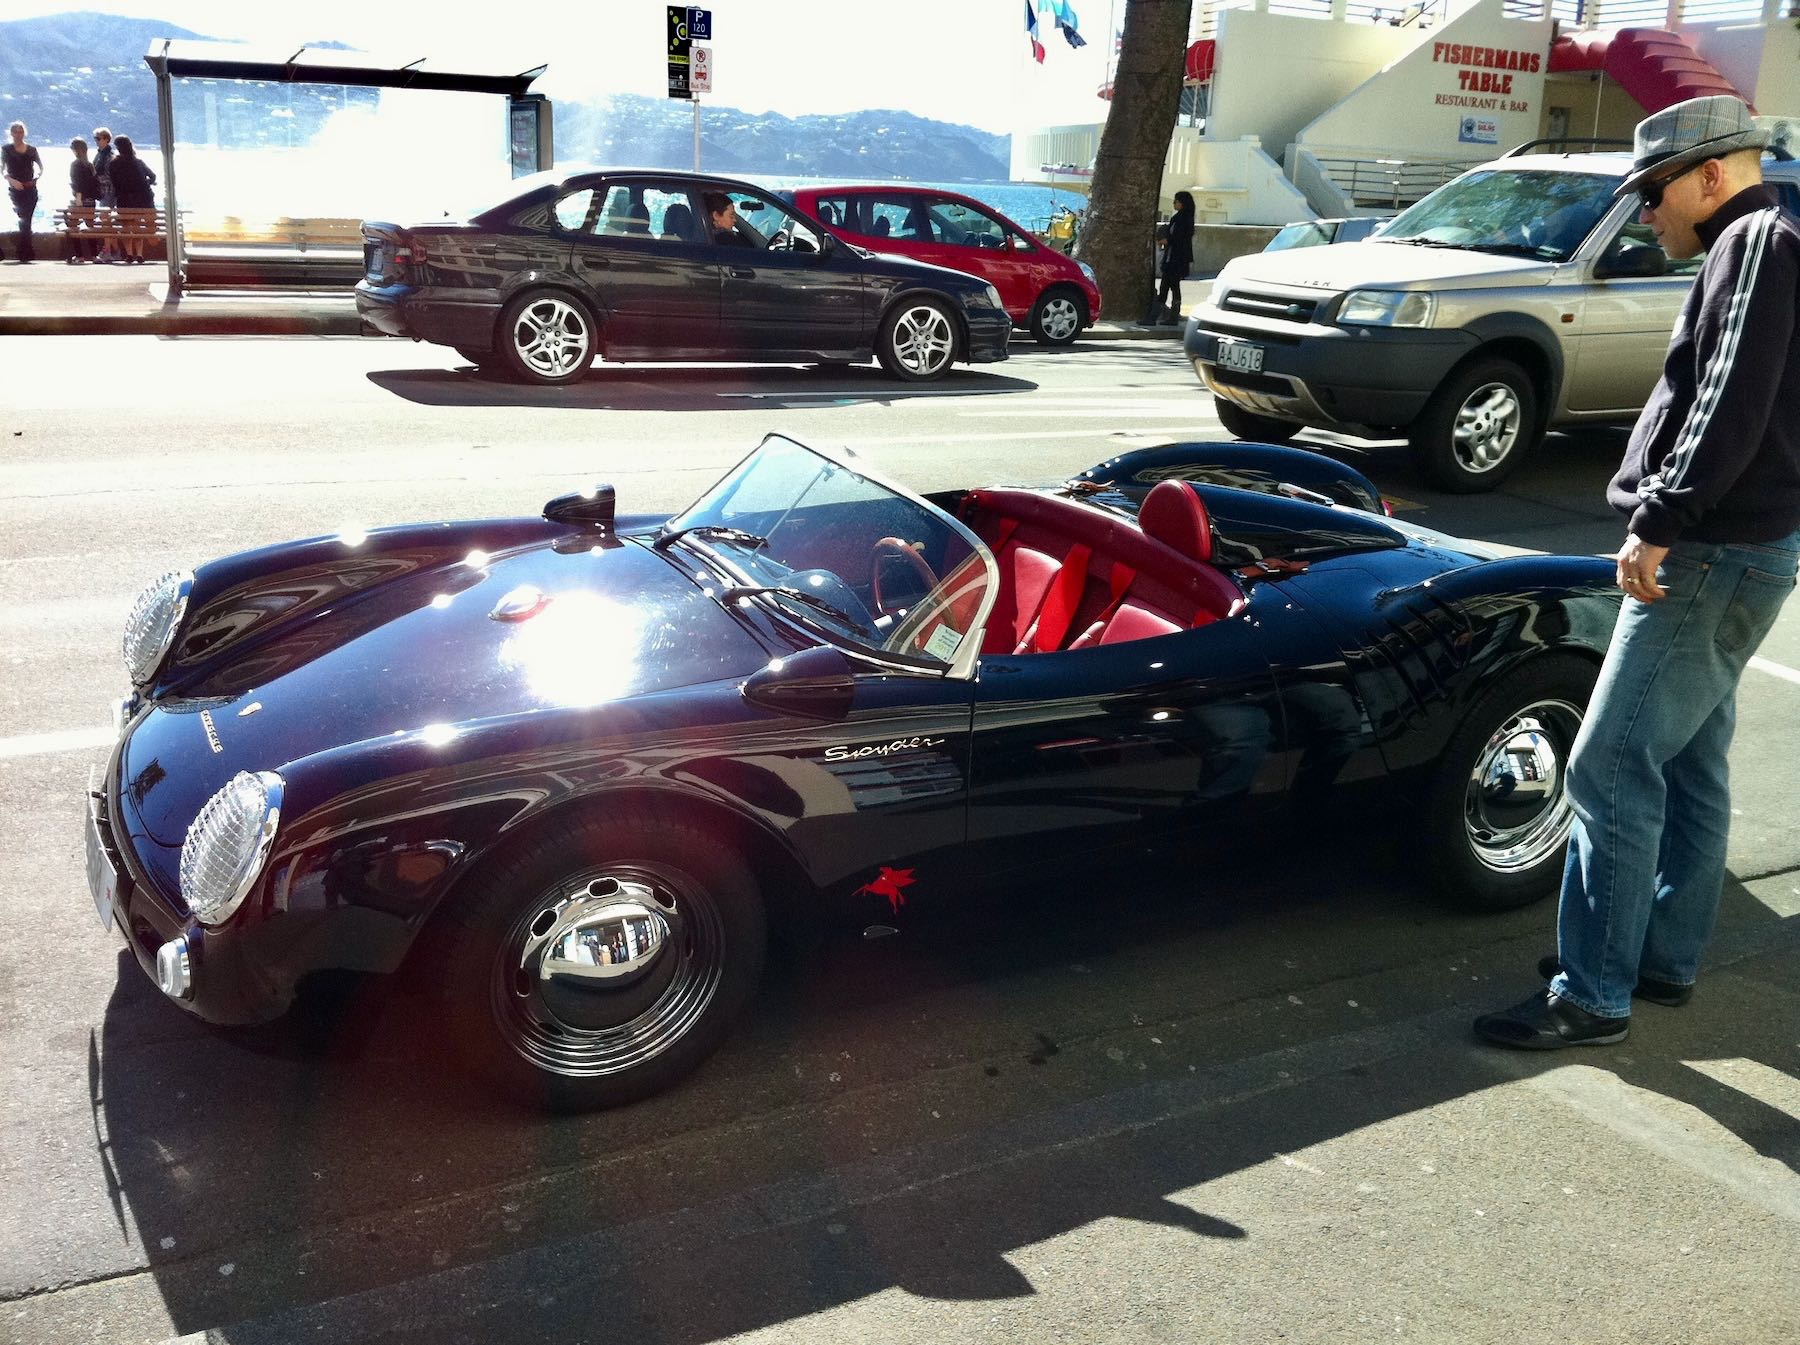 Porsche Spyder sports car, side view, with a hipster admiring it.